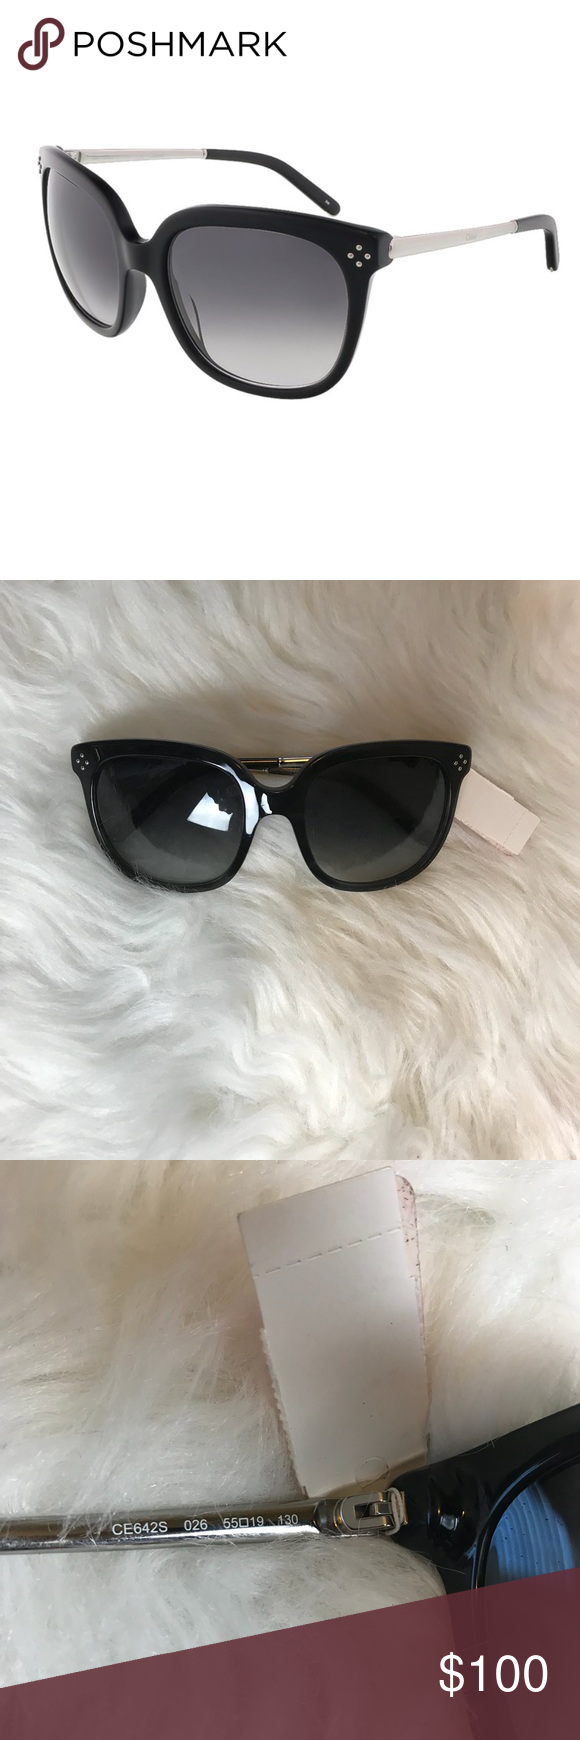 f5281216047b Chloe CE642S Black Gradient Sunglasses NWT New with tags black Chloe  sunglasses. Gradient lenses. Silver accents. No scratches